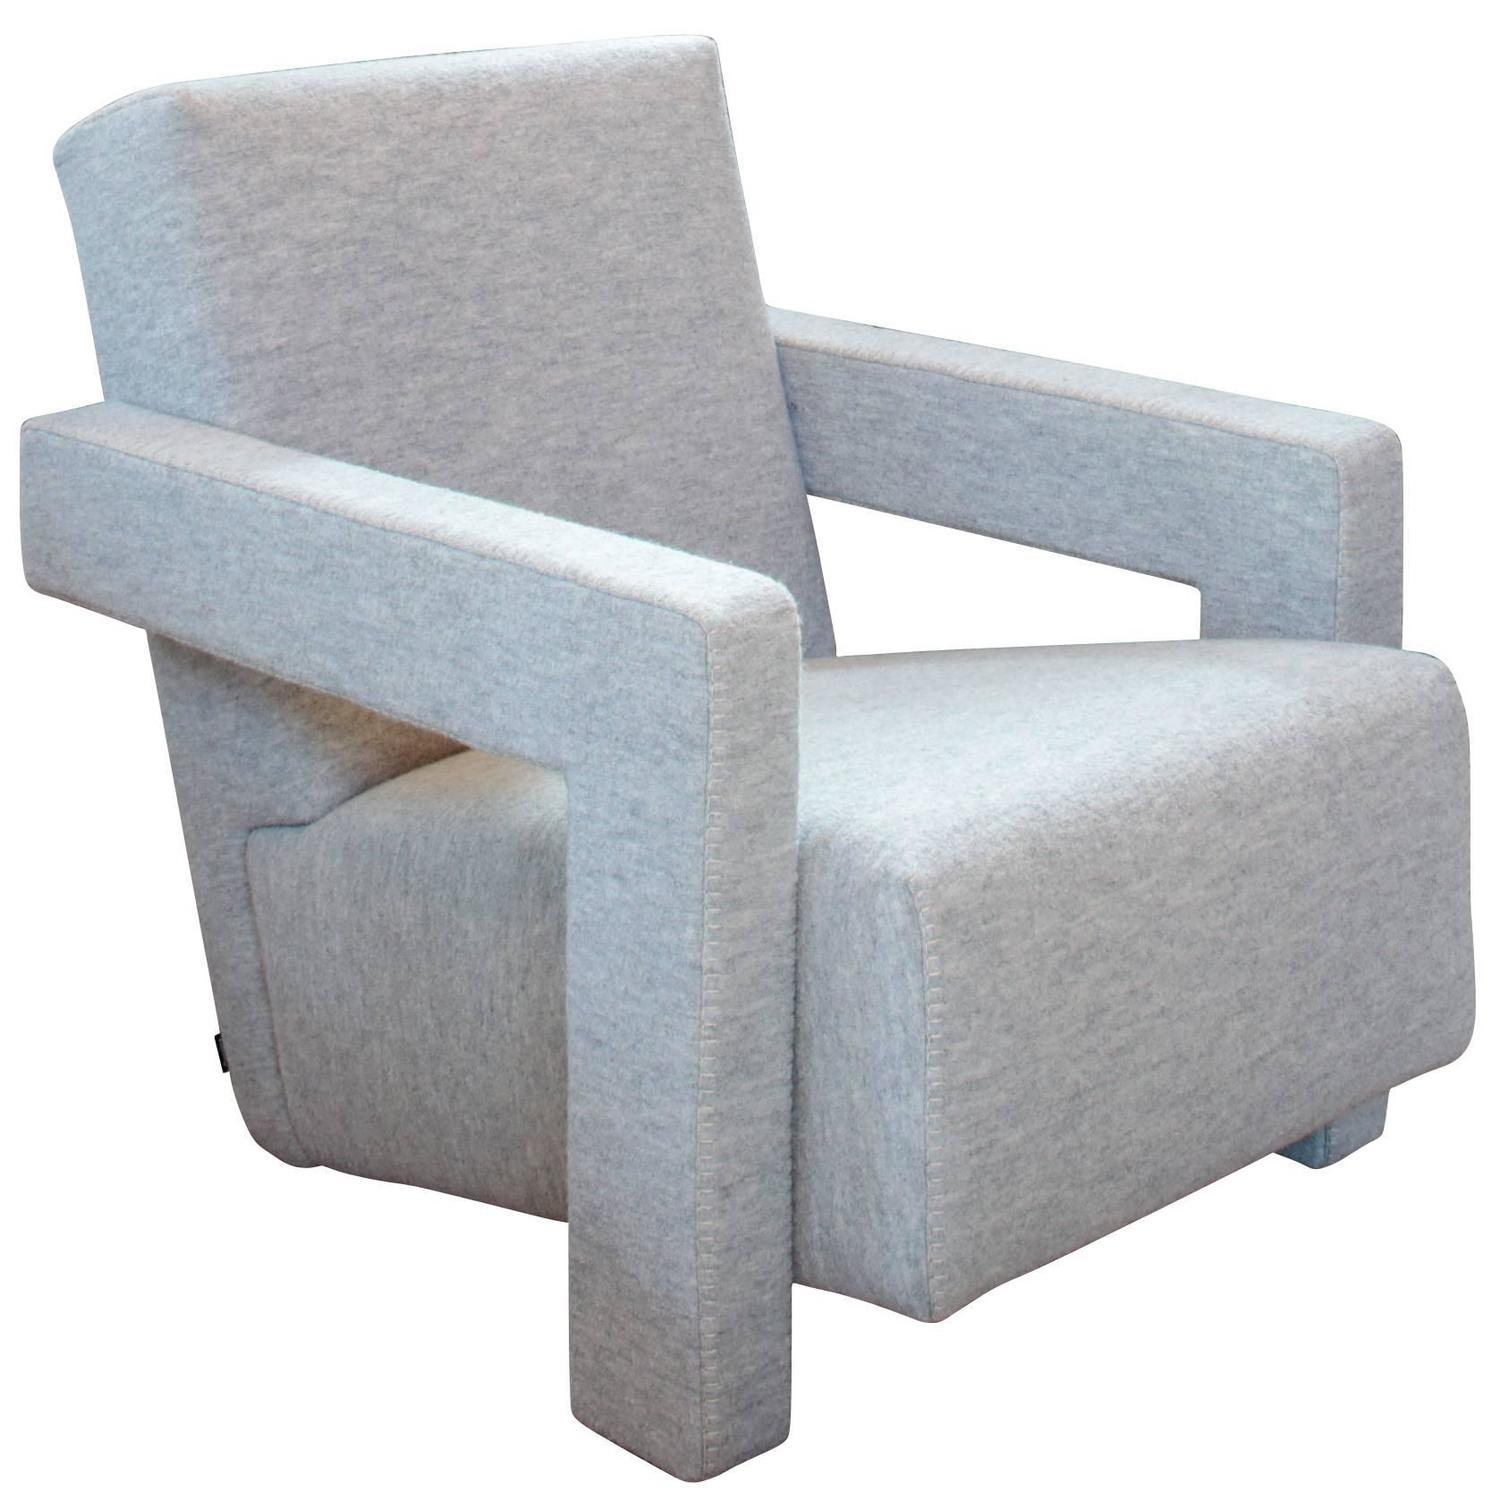 Utrecht Chair by Rietveld in Custom Boiled Wool by Cassina For